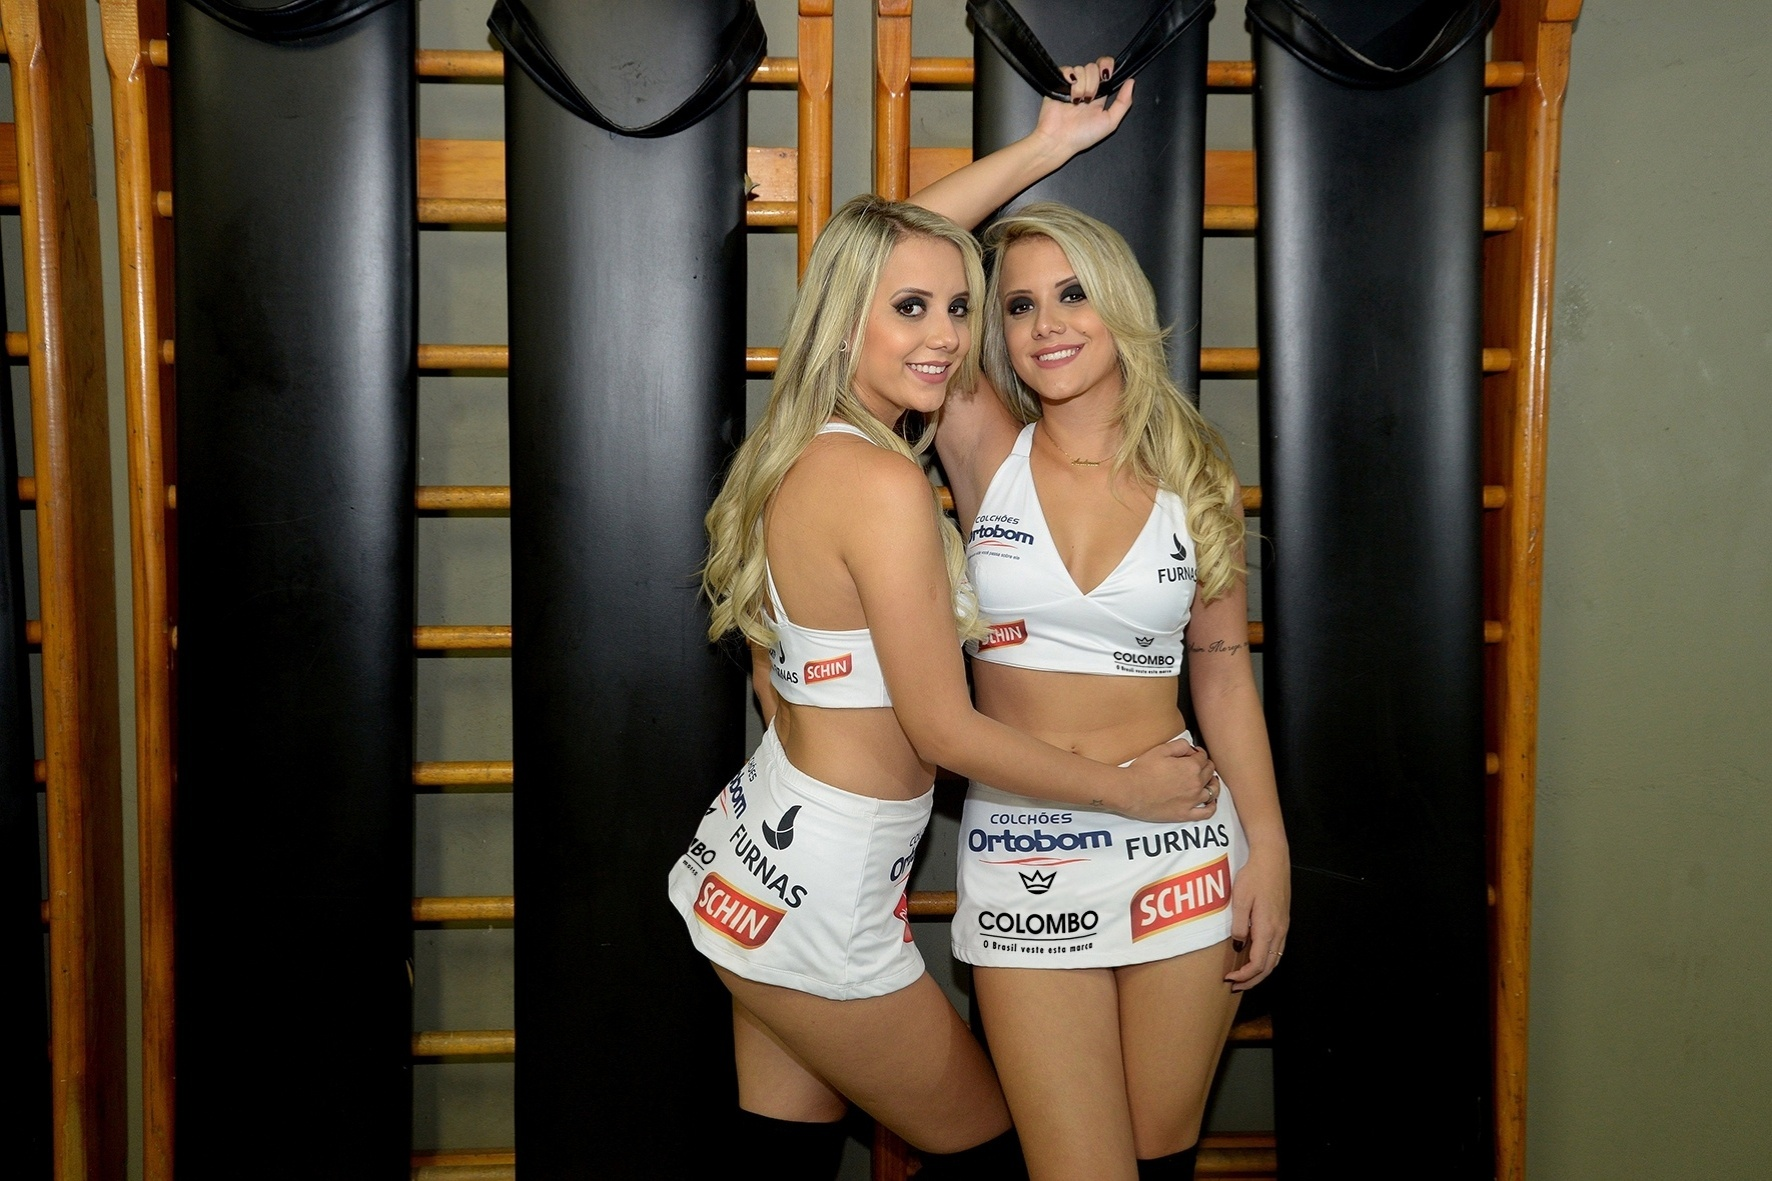 Gêmeas do BBB 15, Amanda e Andressa serão ring girls do Jungle Fight mais uma vez, no evento 79